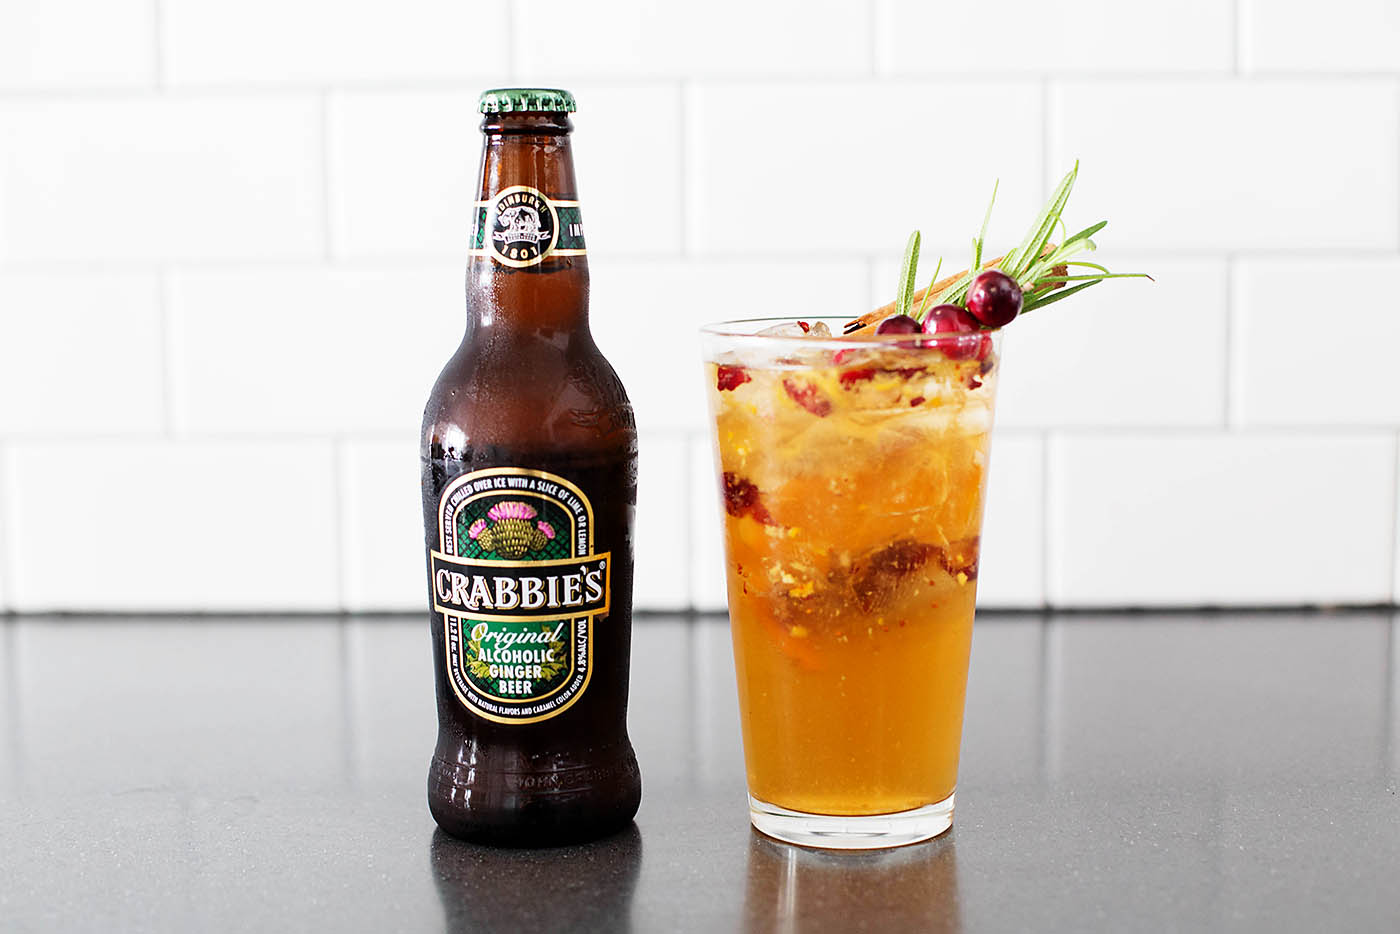 Dark & Crabbie's Holiday Drink Recipe